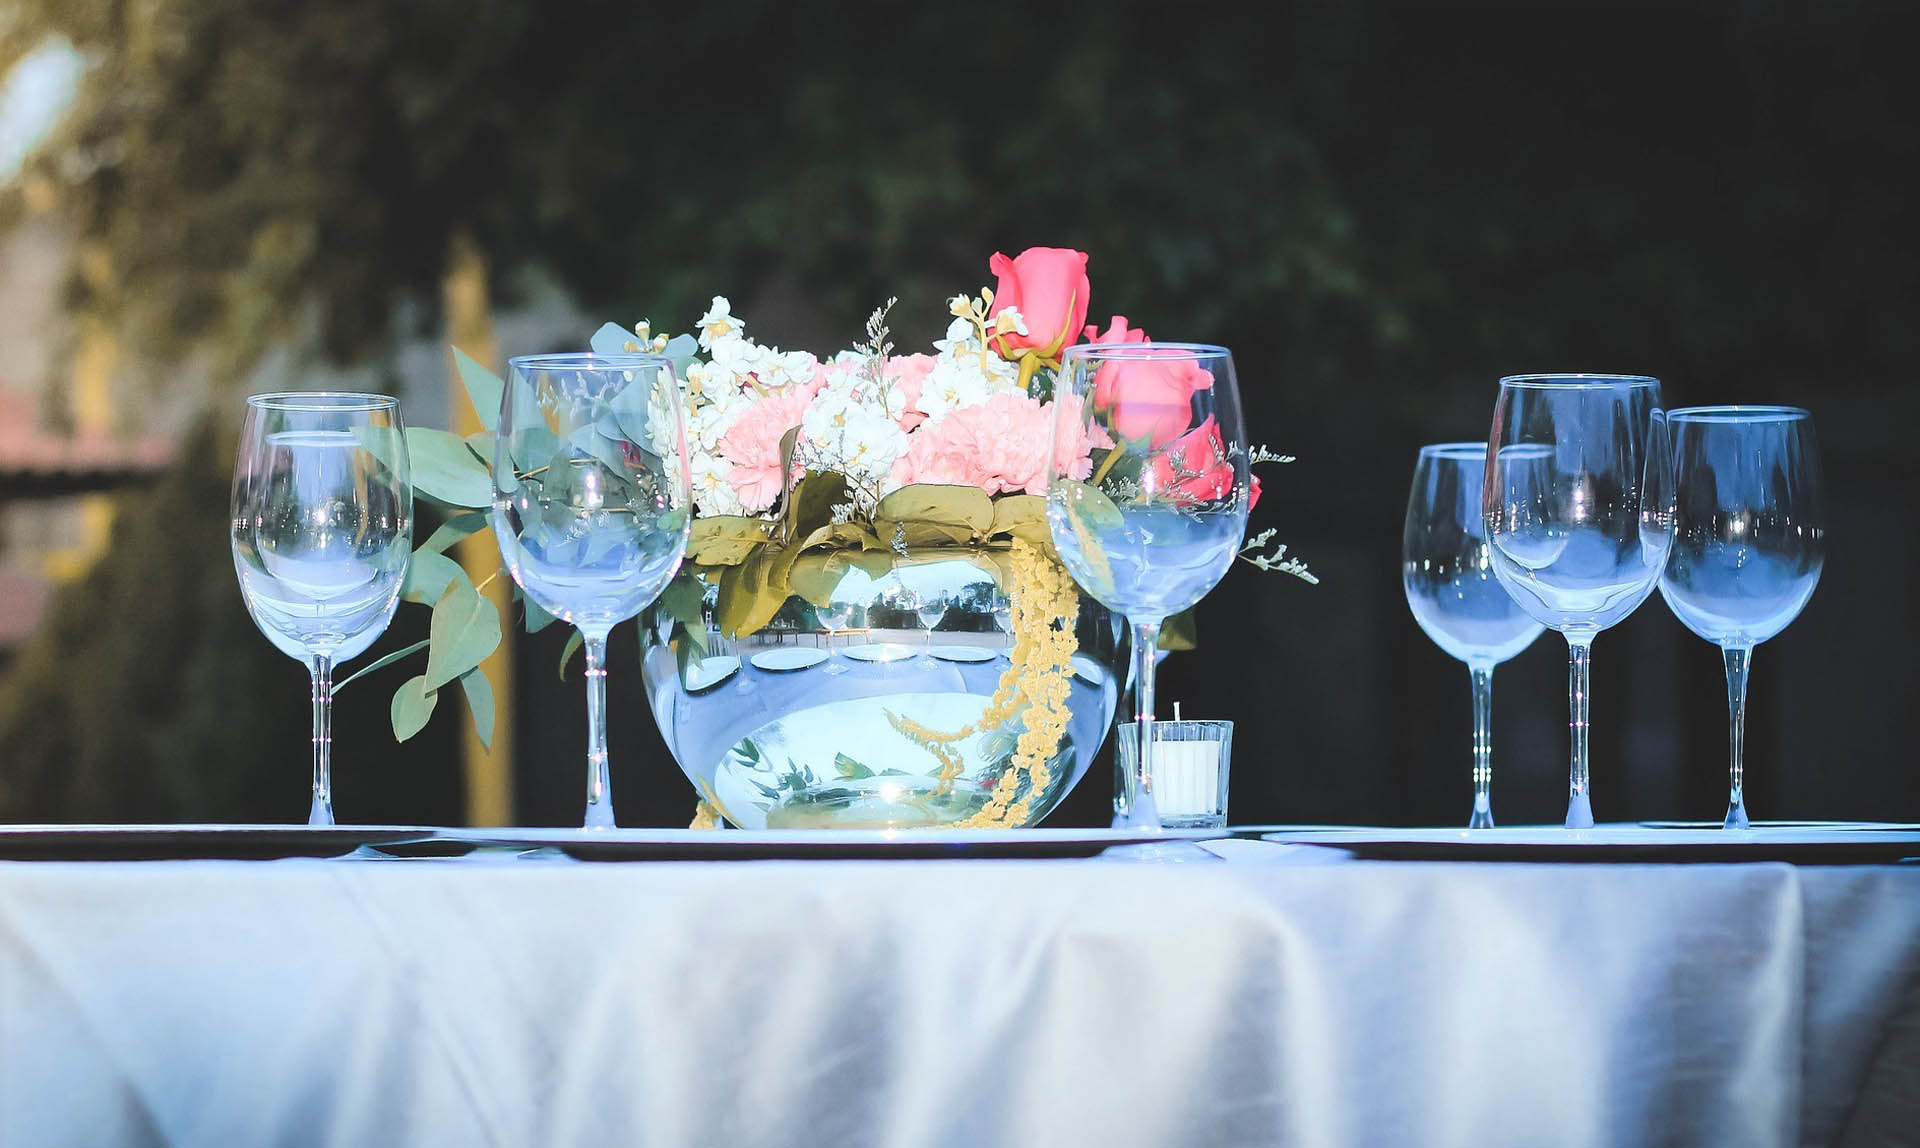 Decoration table with glasses and flowers